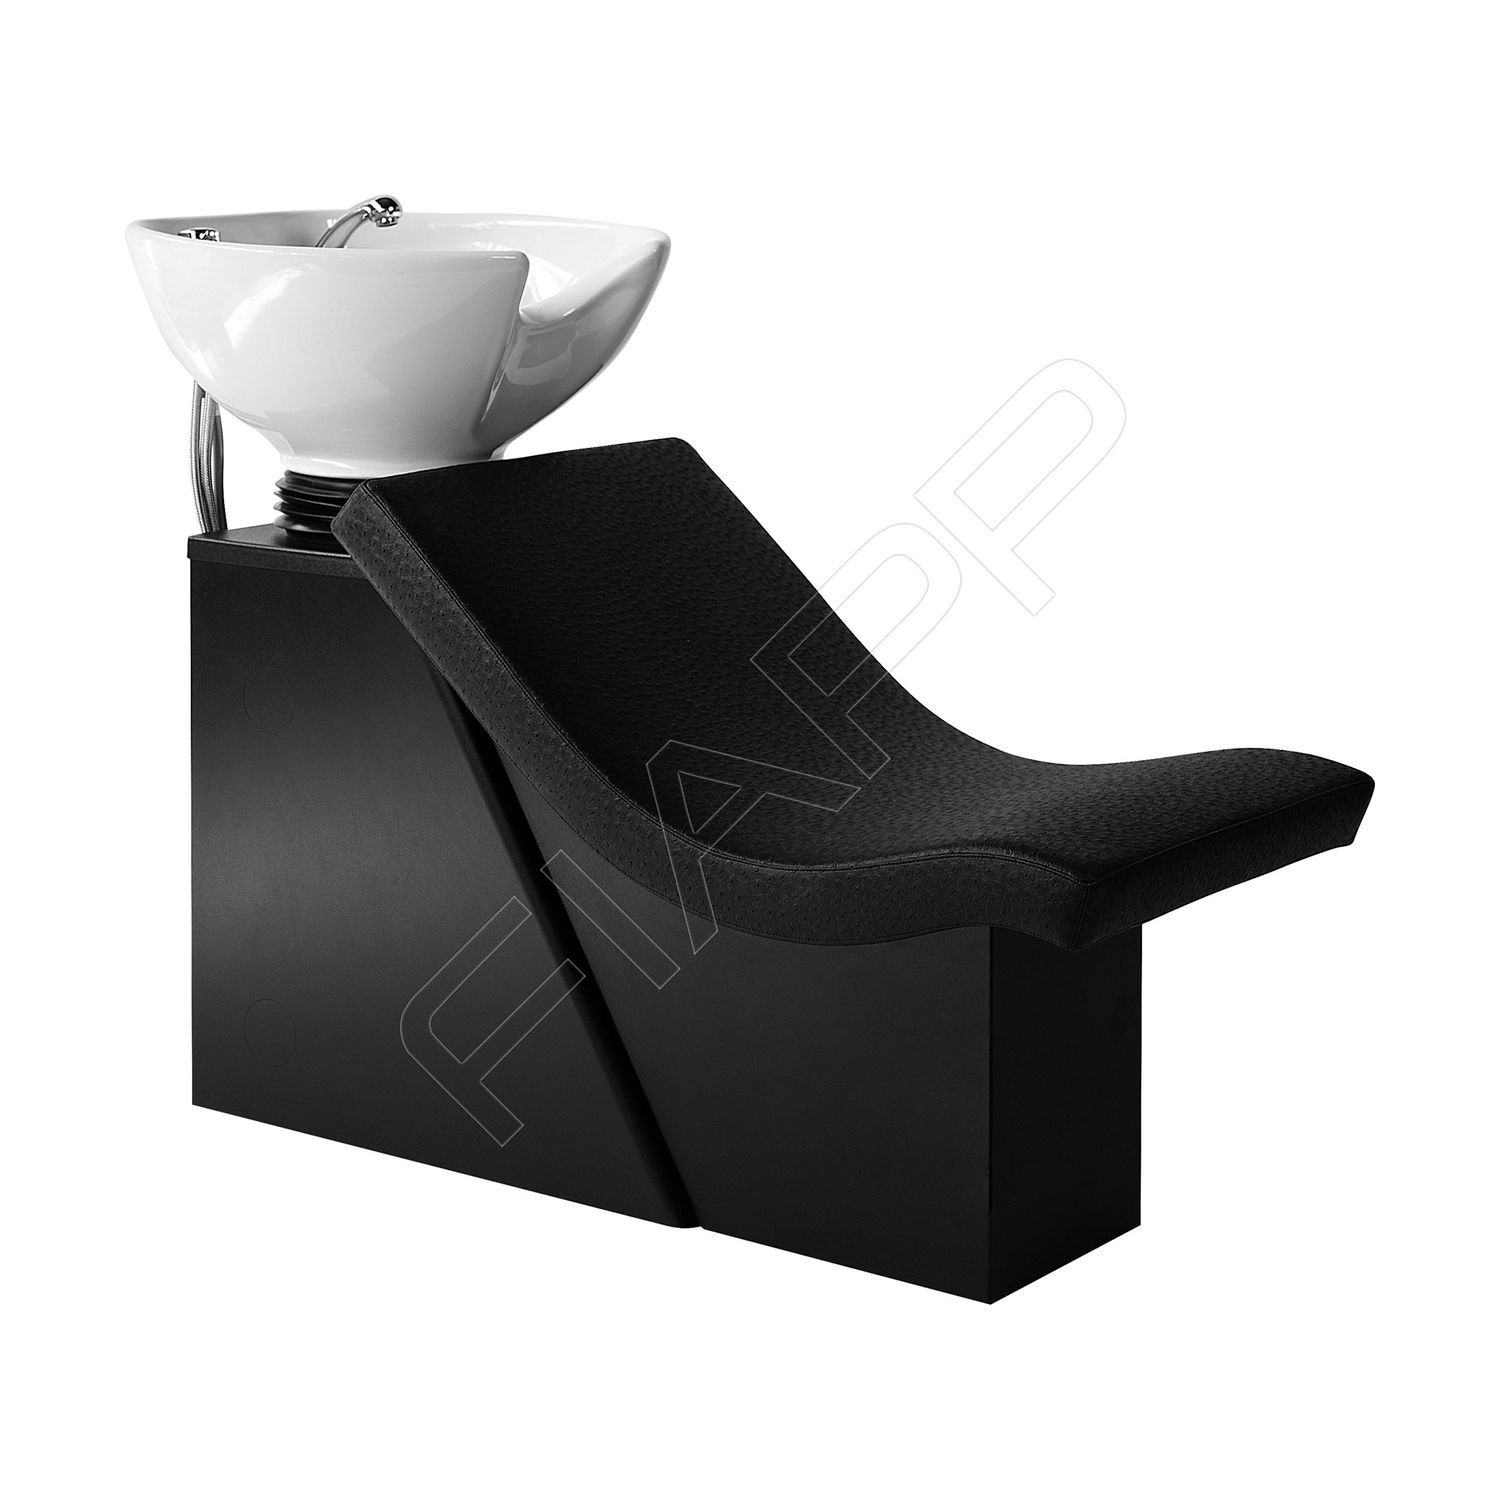 Original design shampoo chair GODIVA 1016 M FIAPP